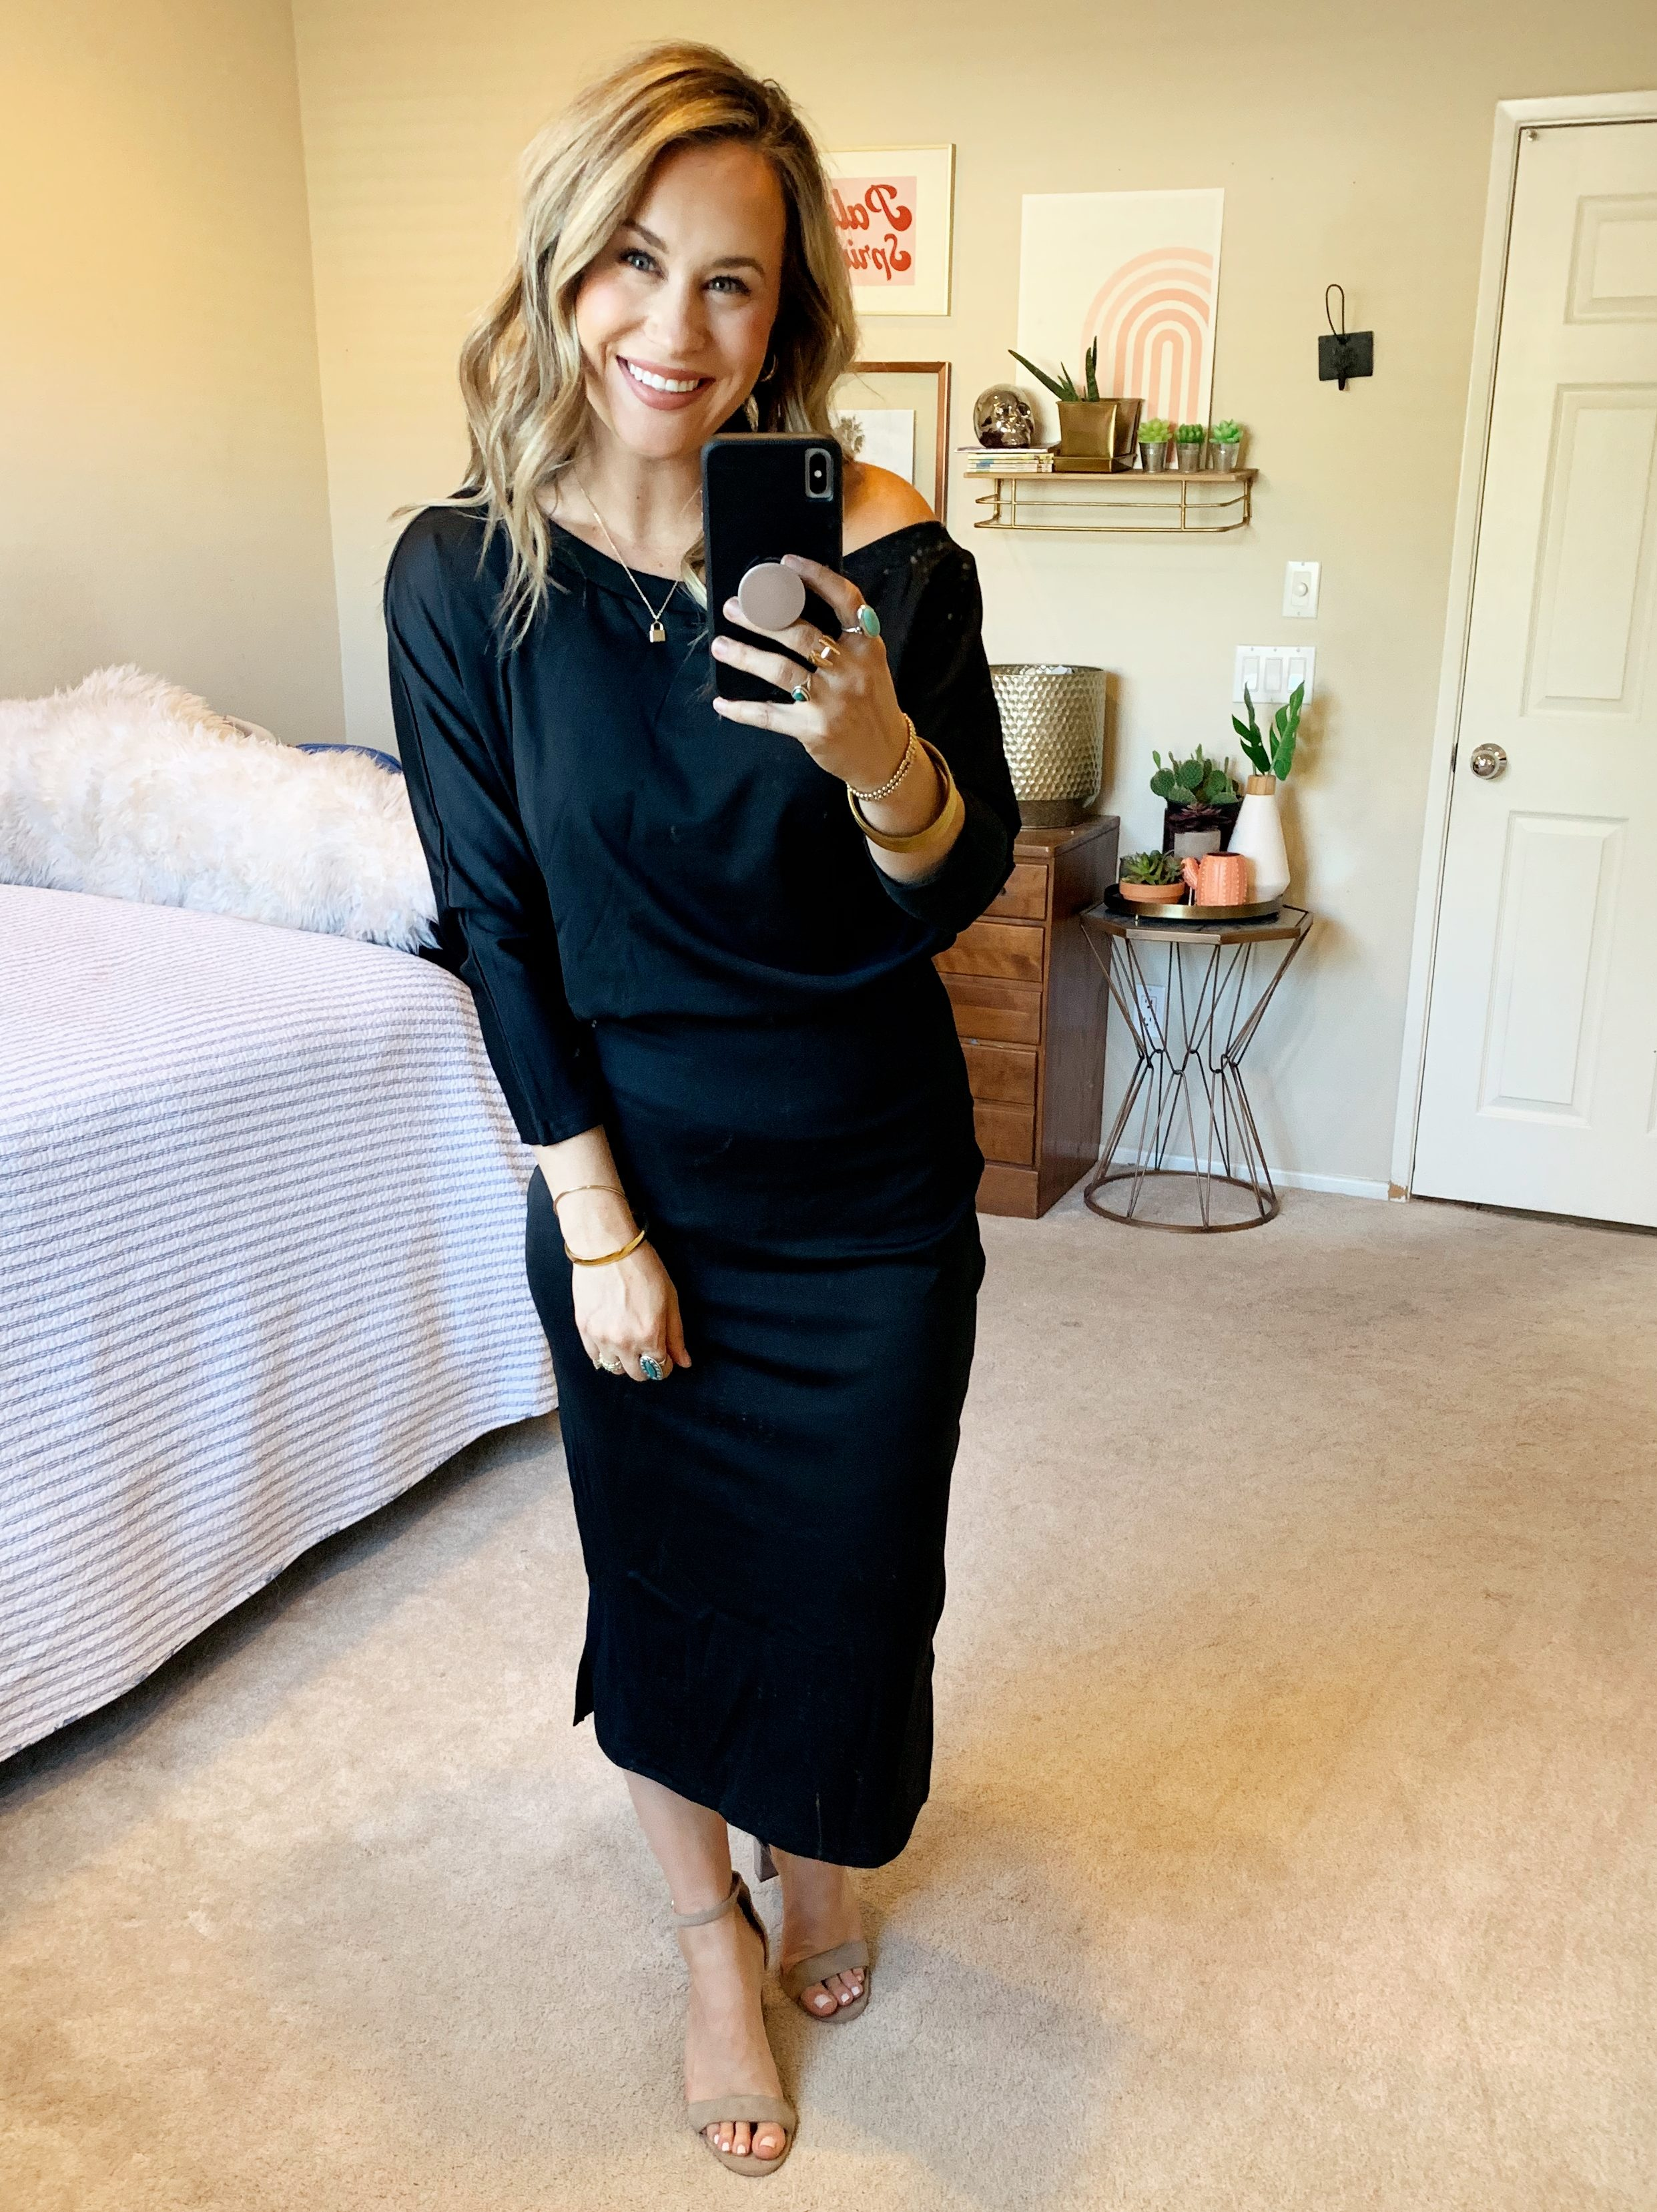 fall wedding guest dresses with sleeves fall wedding guest dresses 2020 fall wedding guest dresses 2019 fall wedding guest dresses amazon fall wedding guest dresses plus size what to wear to a fall wedding 2019 what to wear to a fall wedding 2020 fall dresses